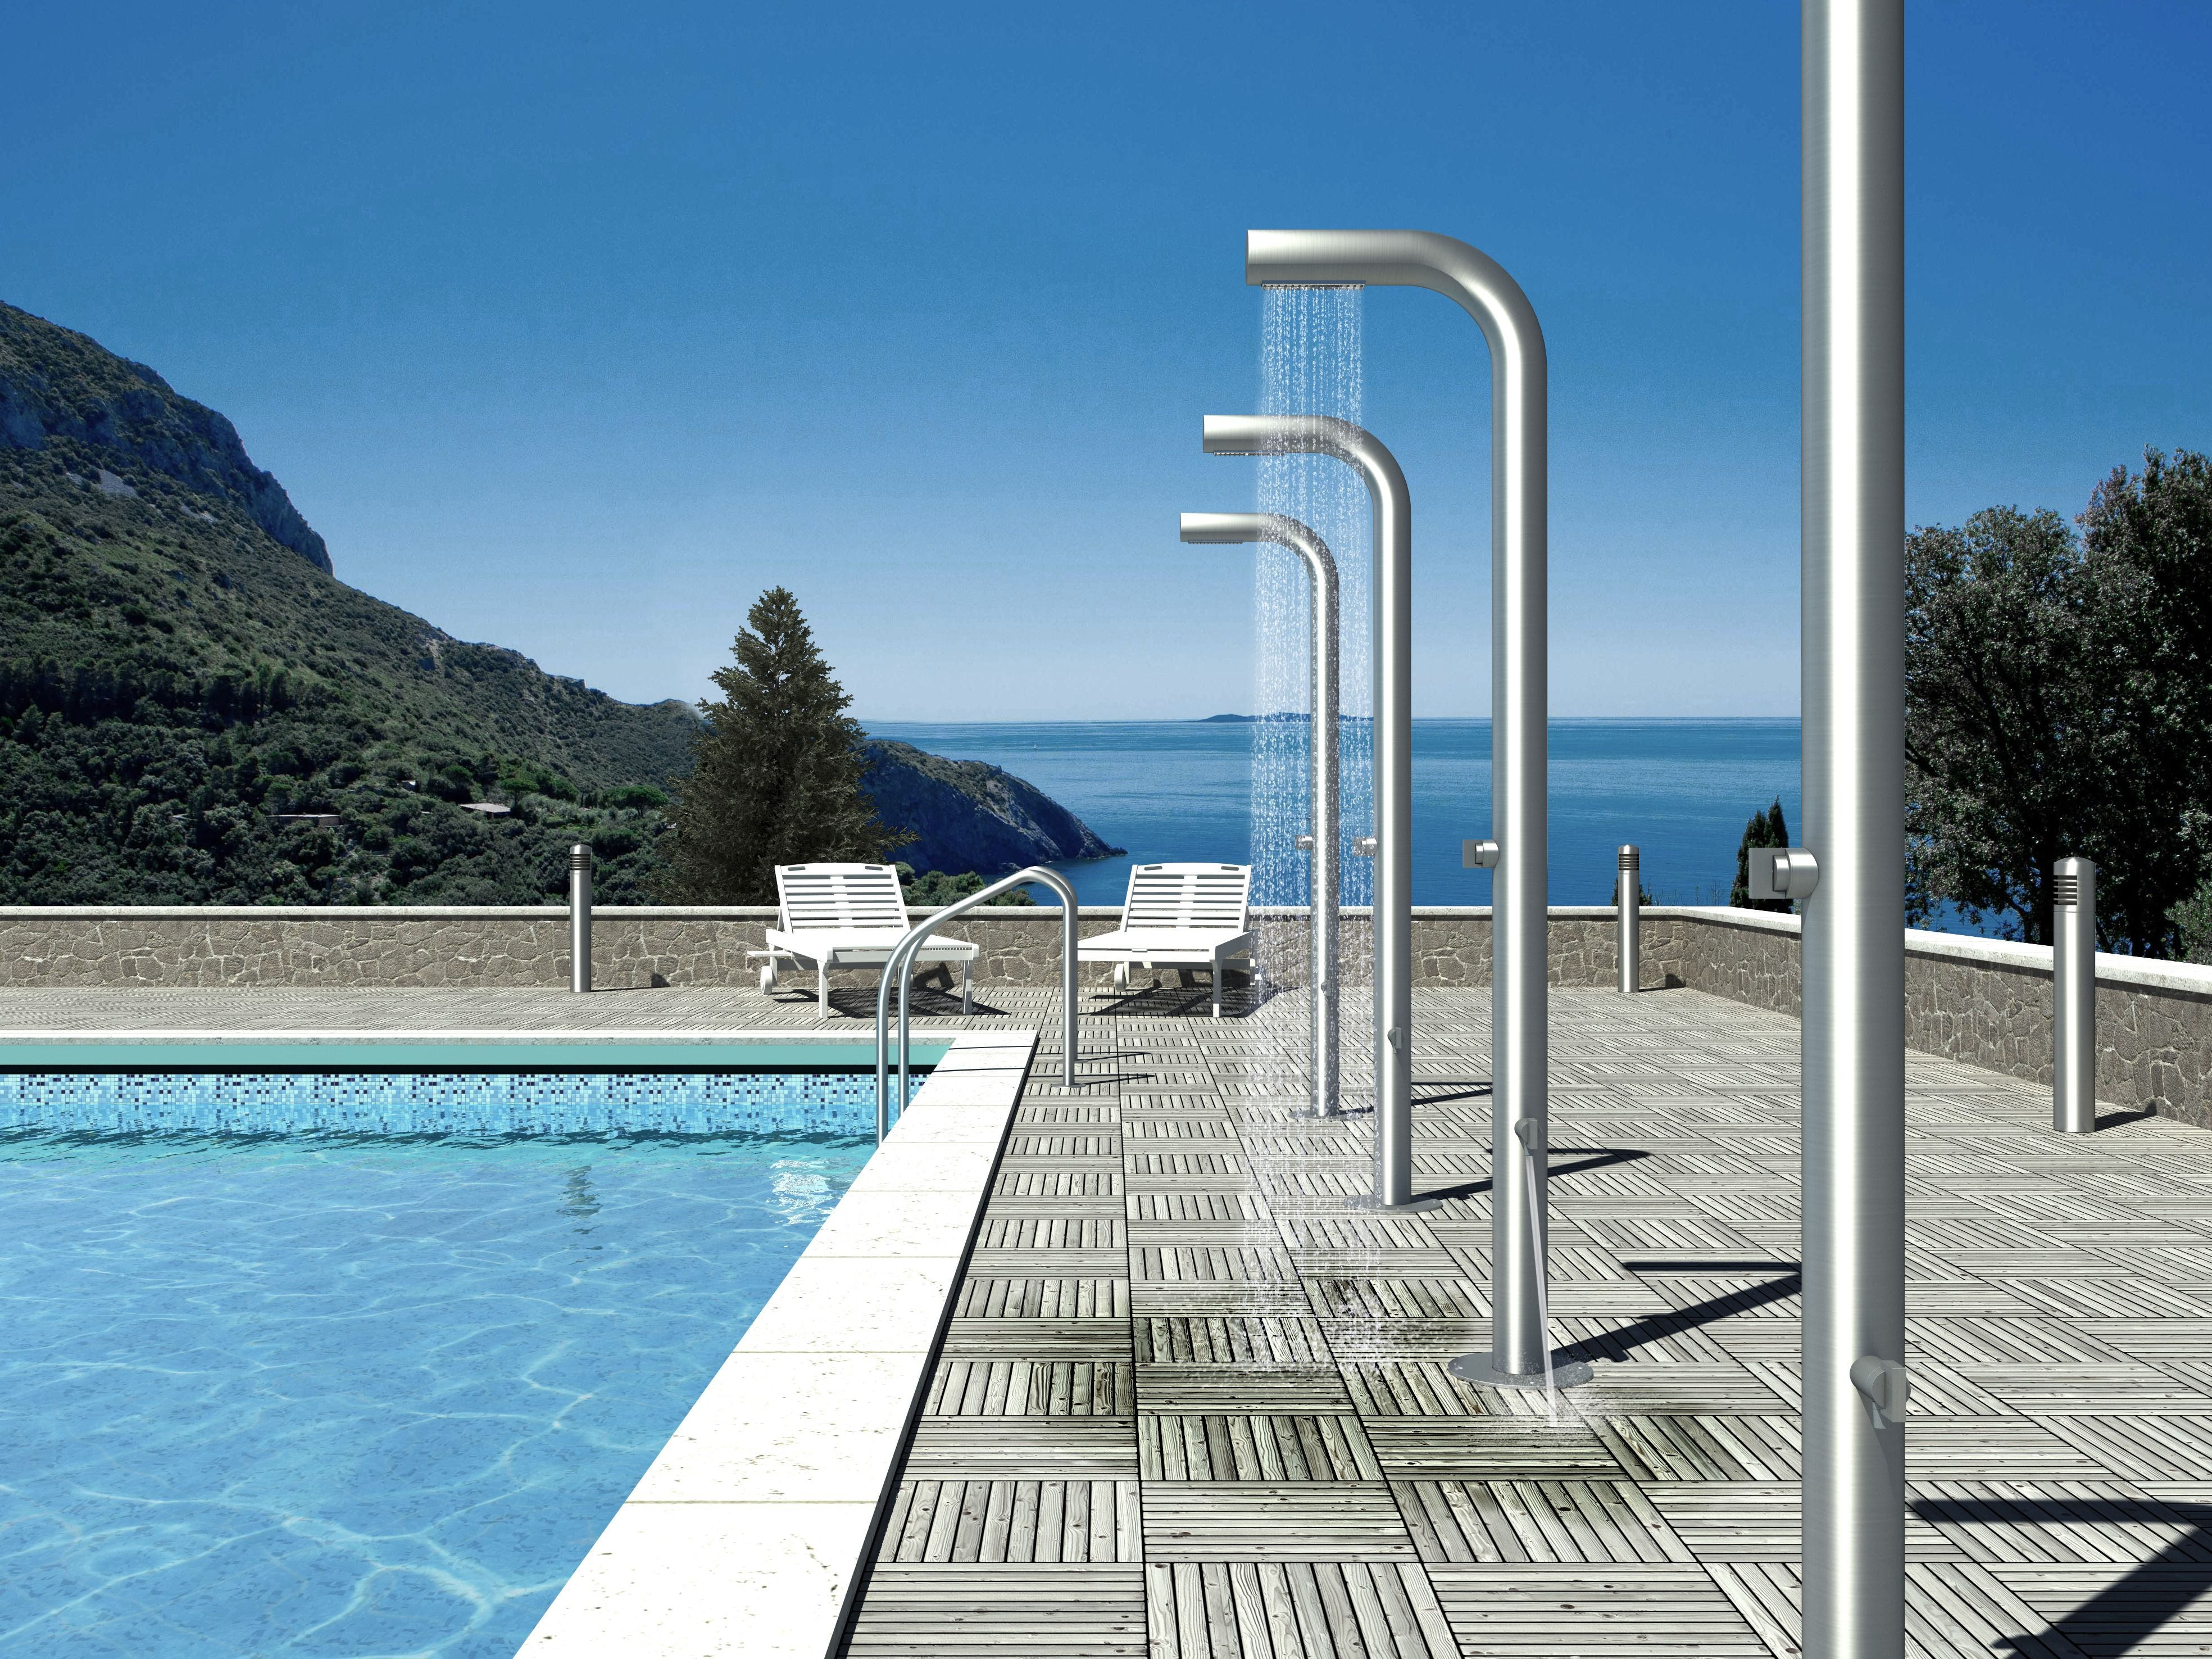 Swimming Pool Showering : Bongio outdoor shower for swimming pool fun bathroom